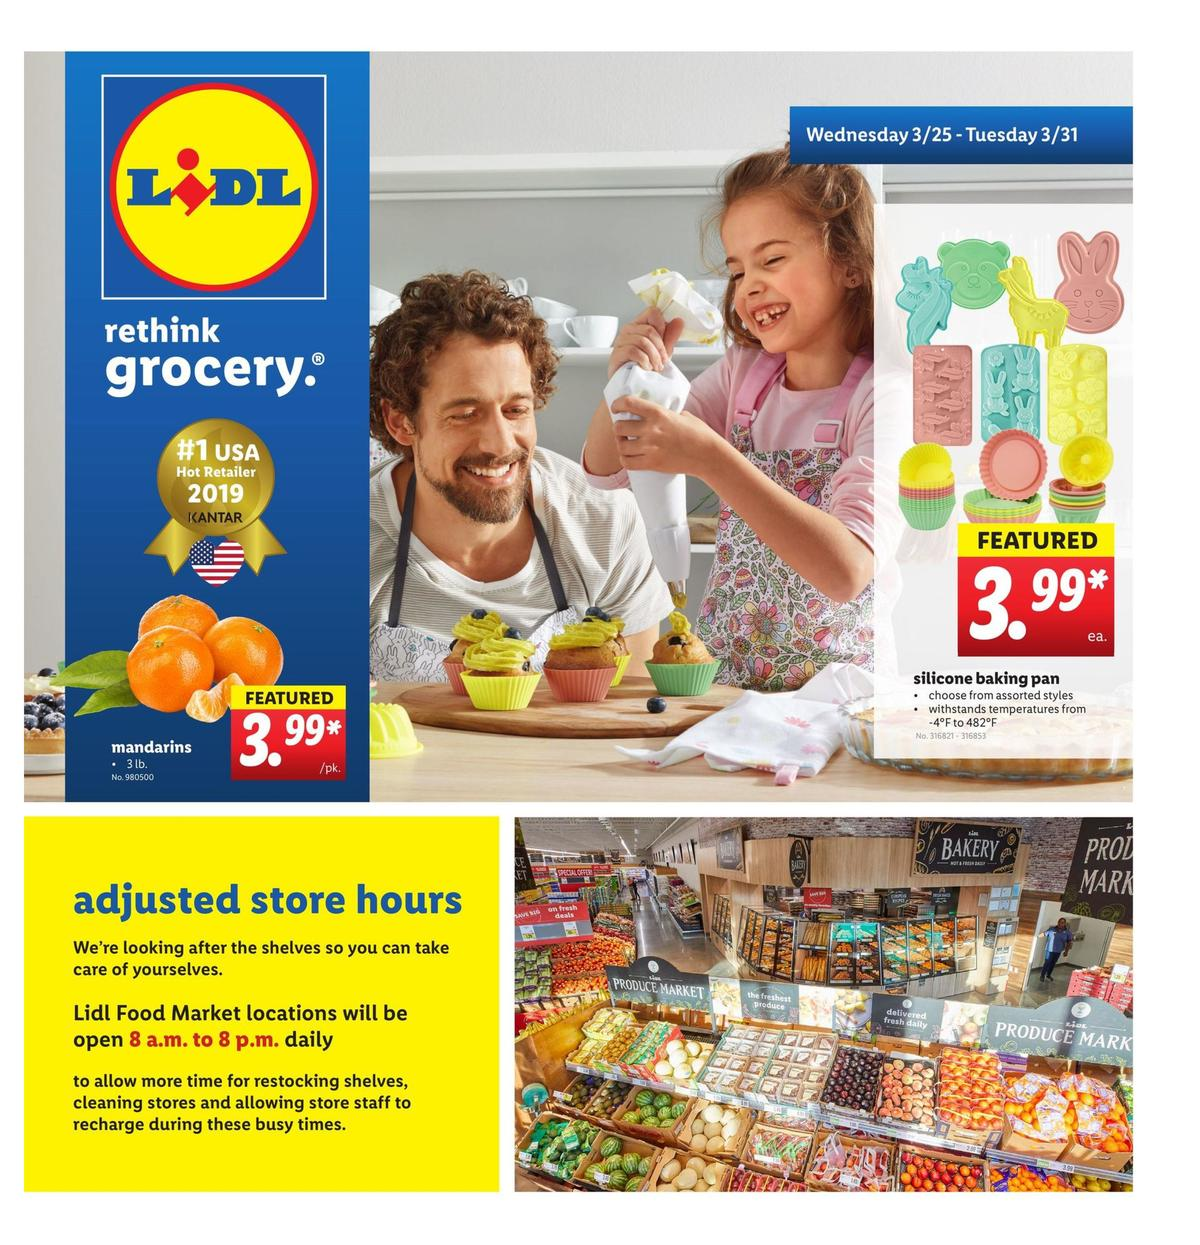 LIDL Weekly Ad from March 25